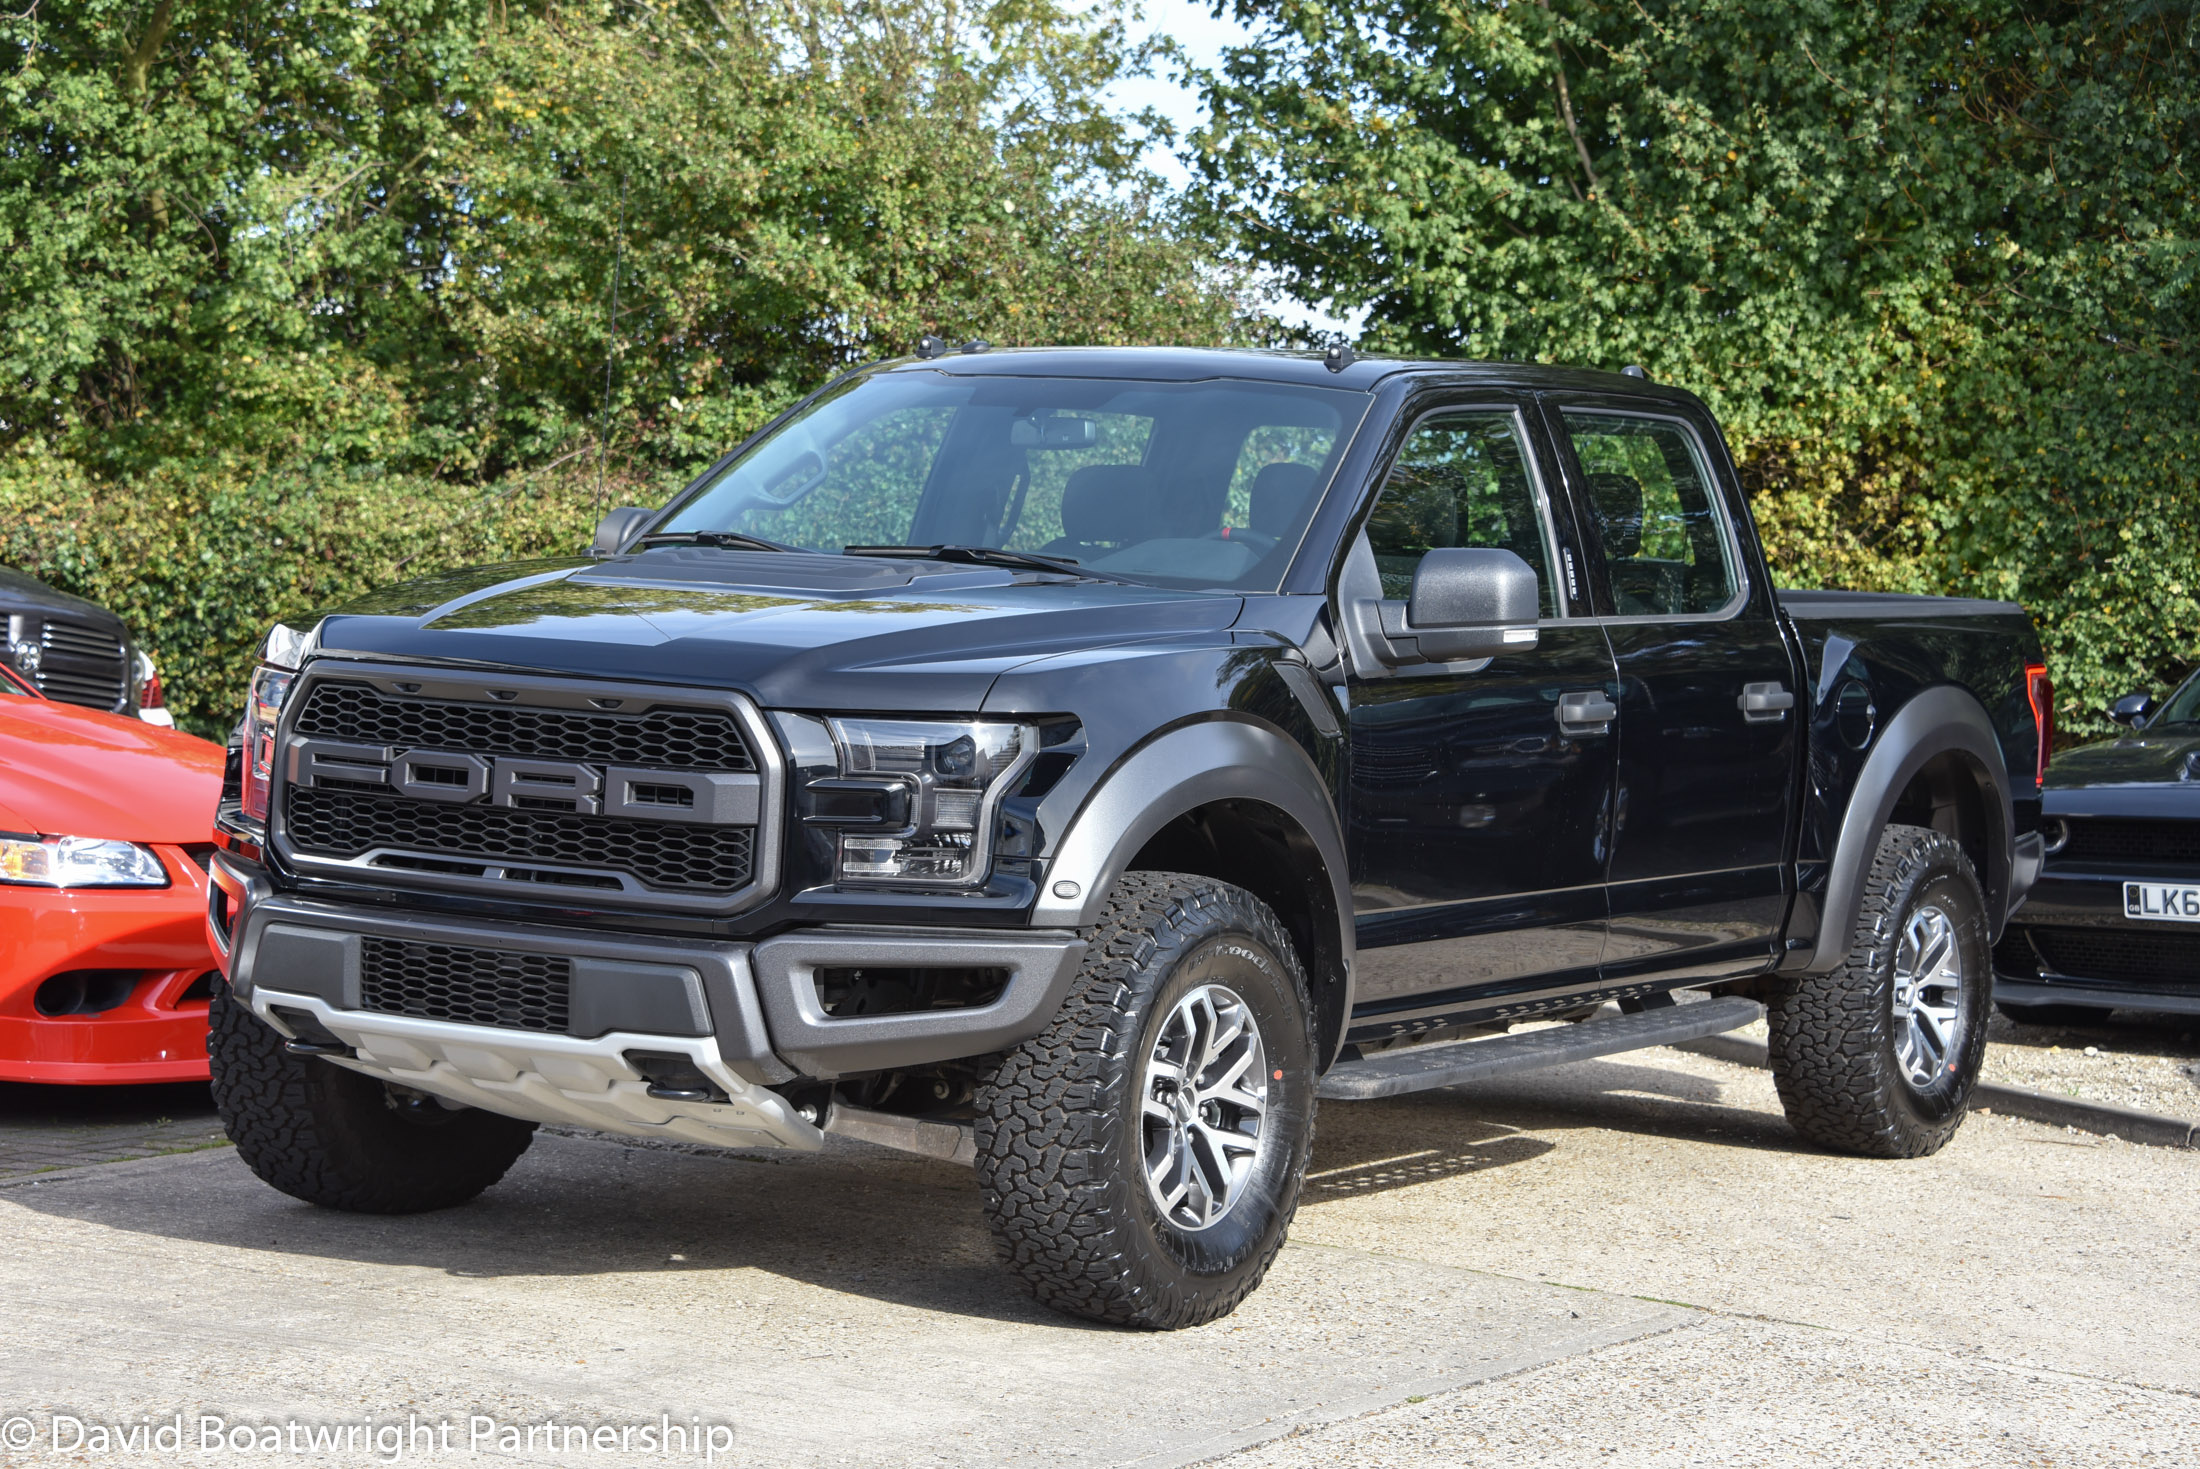 Ram Rt For Sale >> American Vehicles in Stock – David Boatwright Partnership | Dodge Ram | F-150 | Challenger